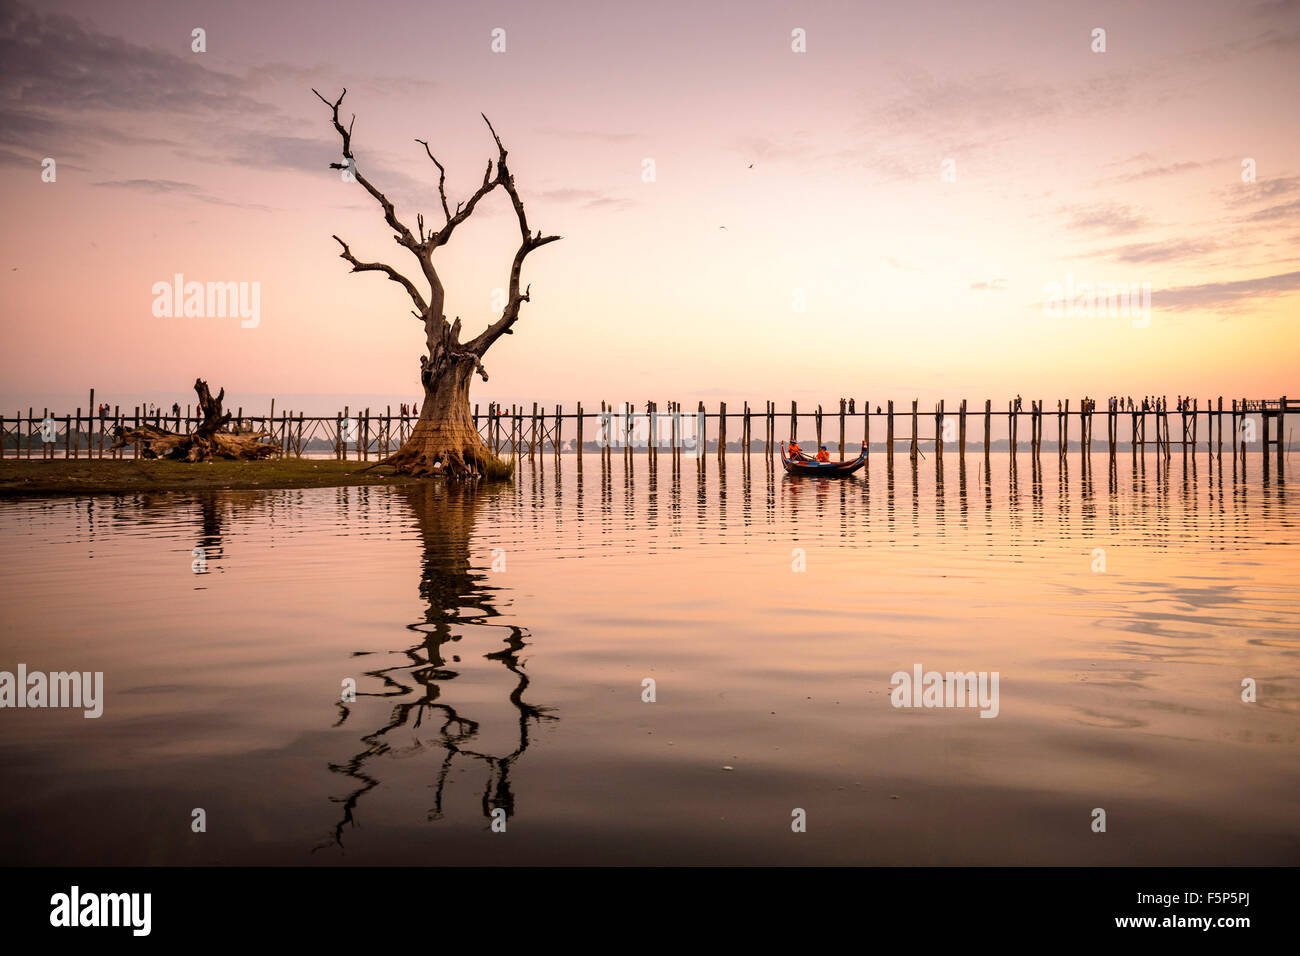 U Bein bridge of Mandalay, Myanmar. - Stock Image